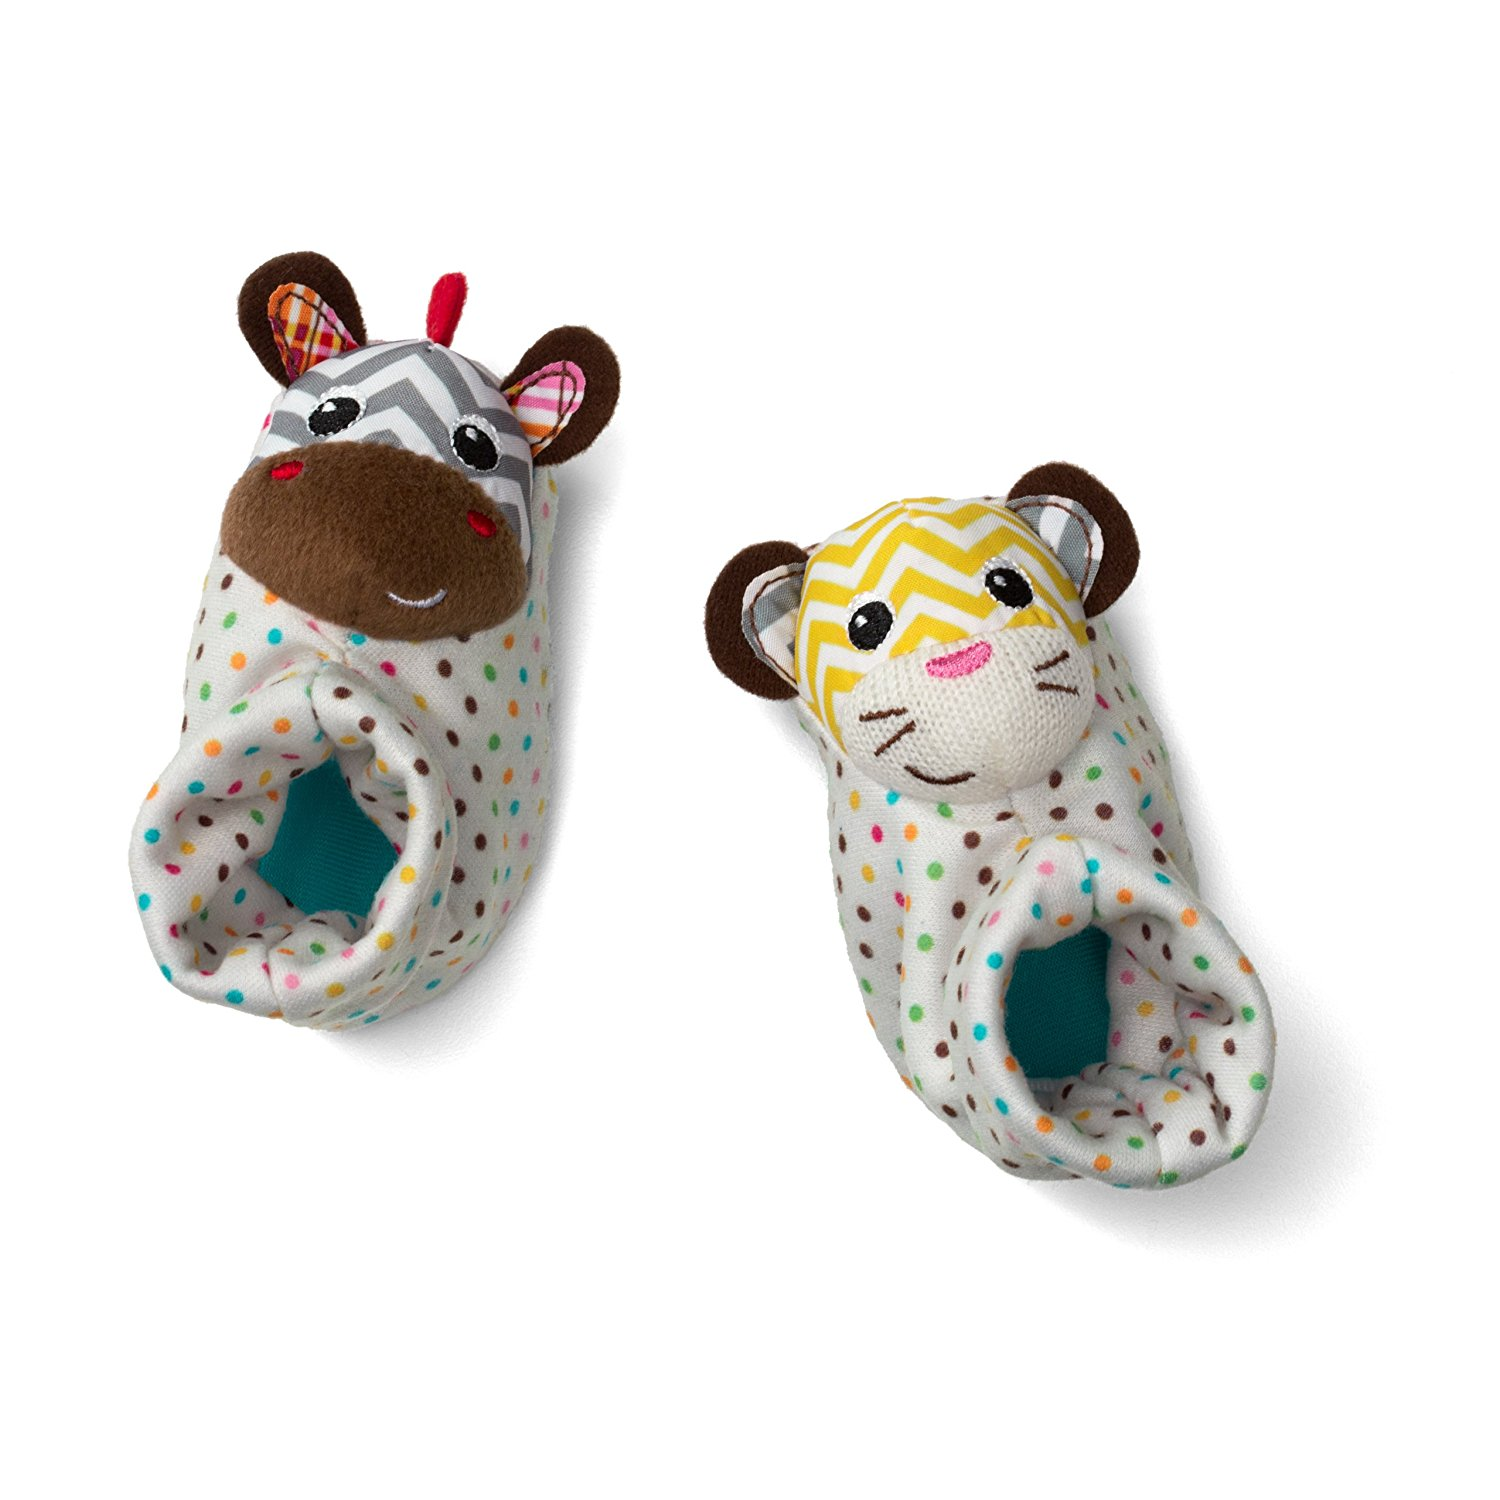 Foot Rattles, Zebra and Tiger, Slip on with ease By Infantino Ship from US